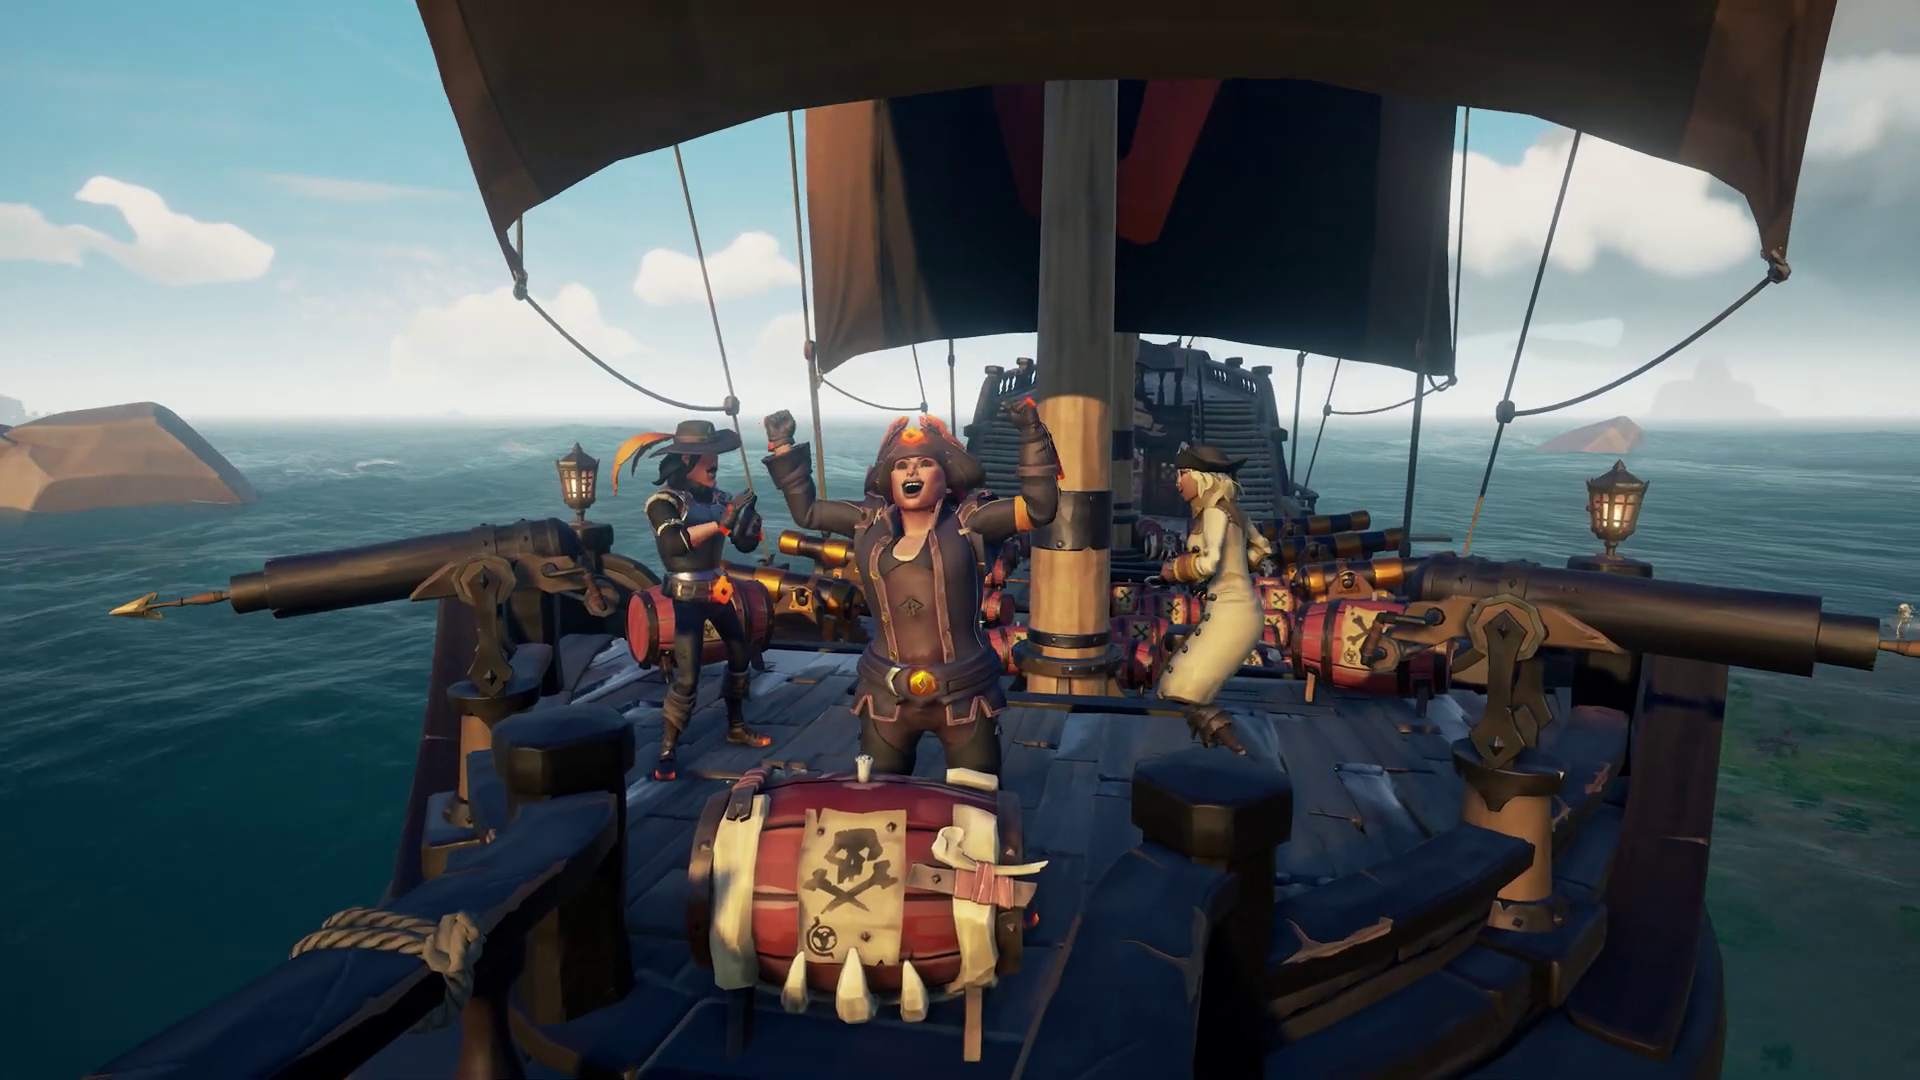 Sea of Thieves release notes